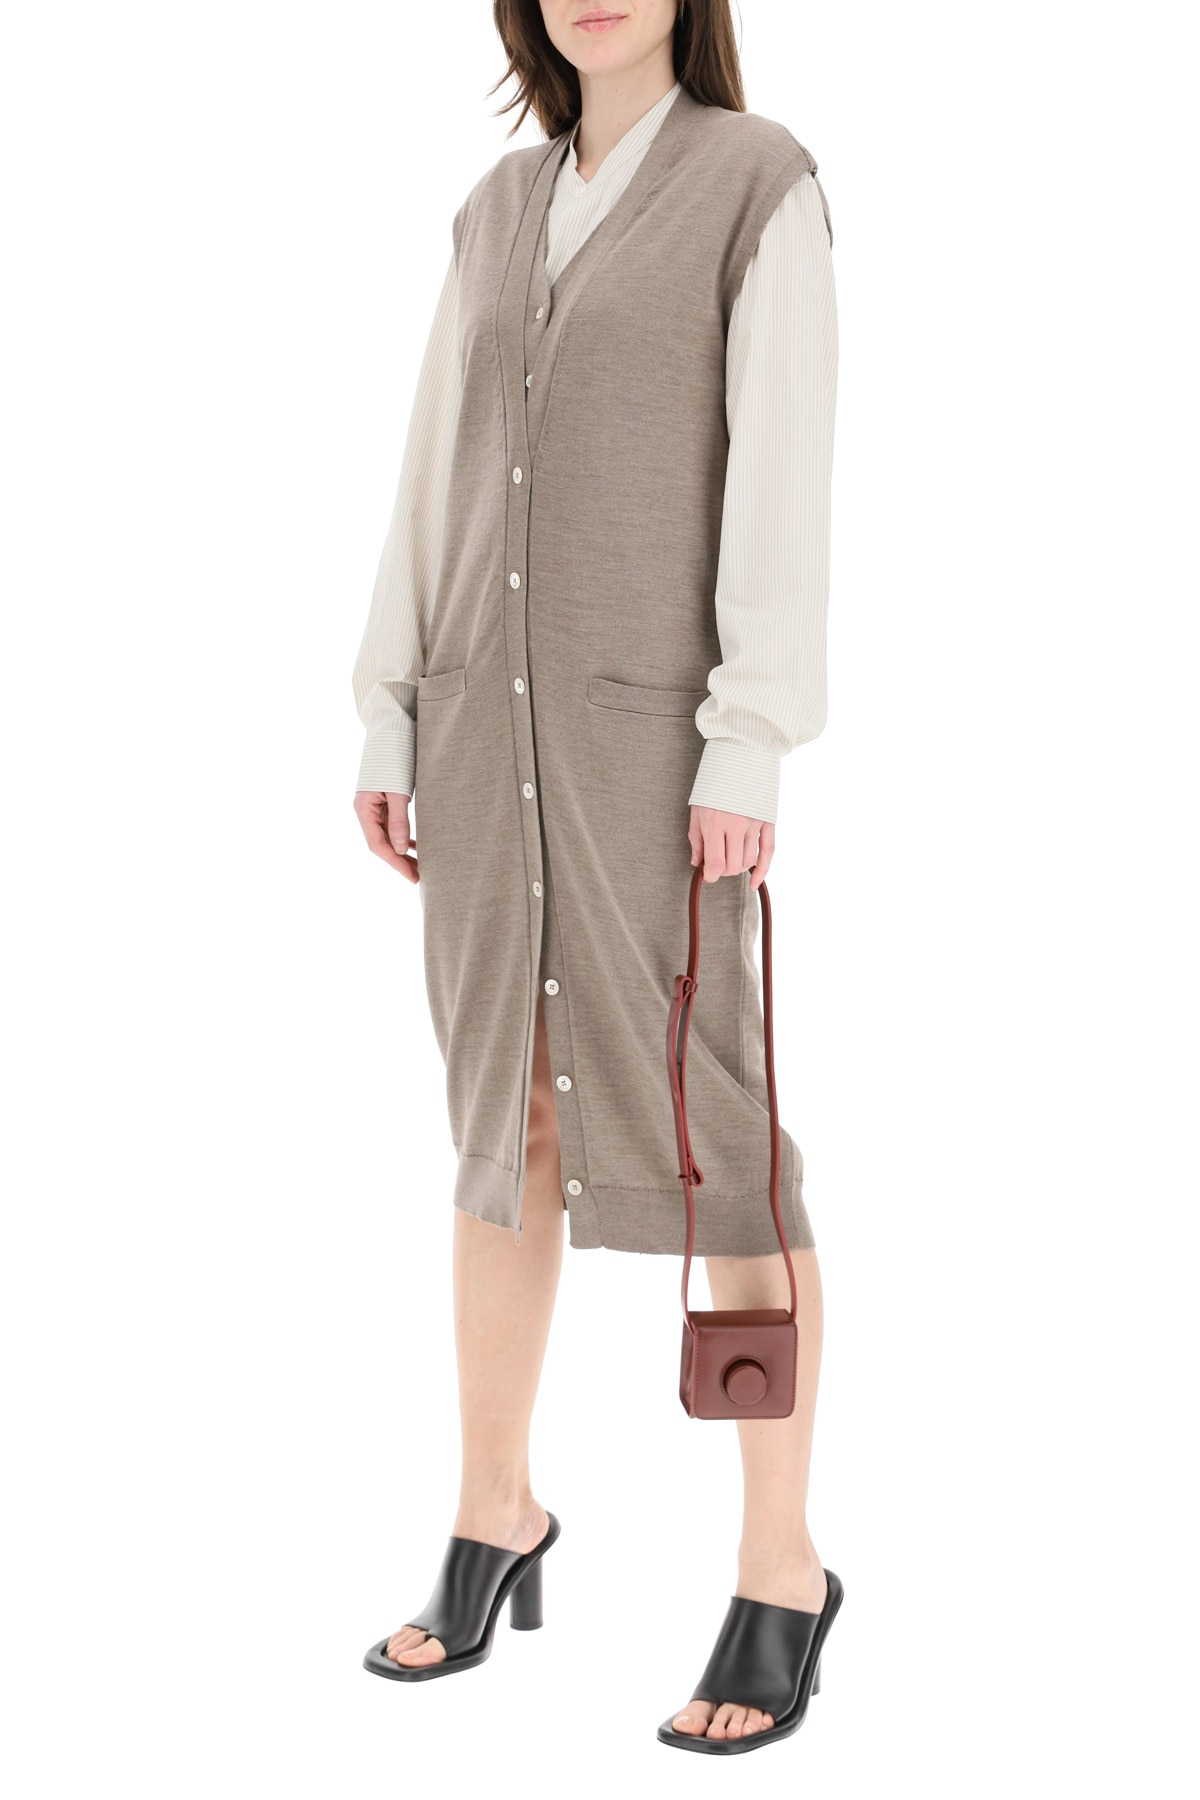 LEMAIRE Clothing LAYERED DRESS IN MERINO WOOL BLEND